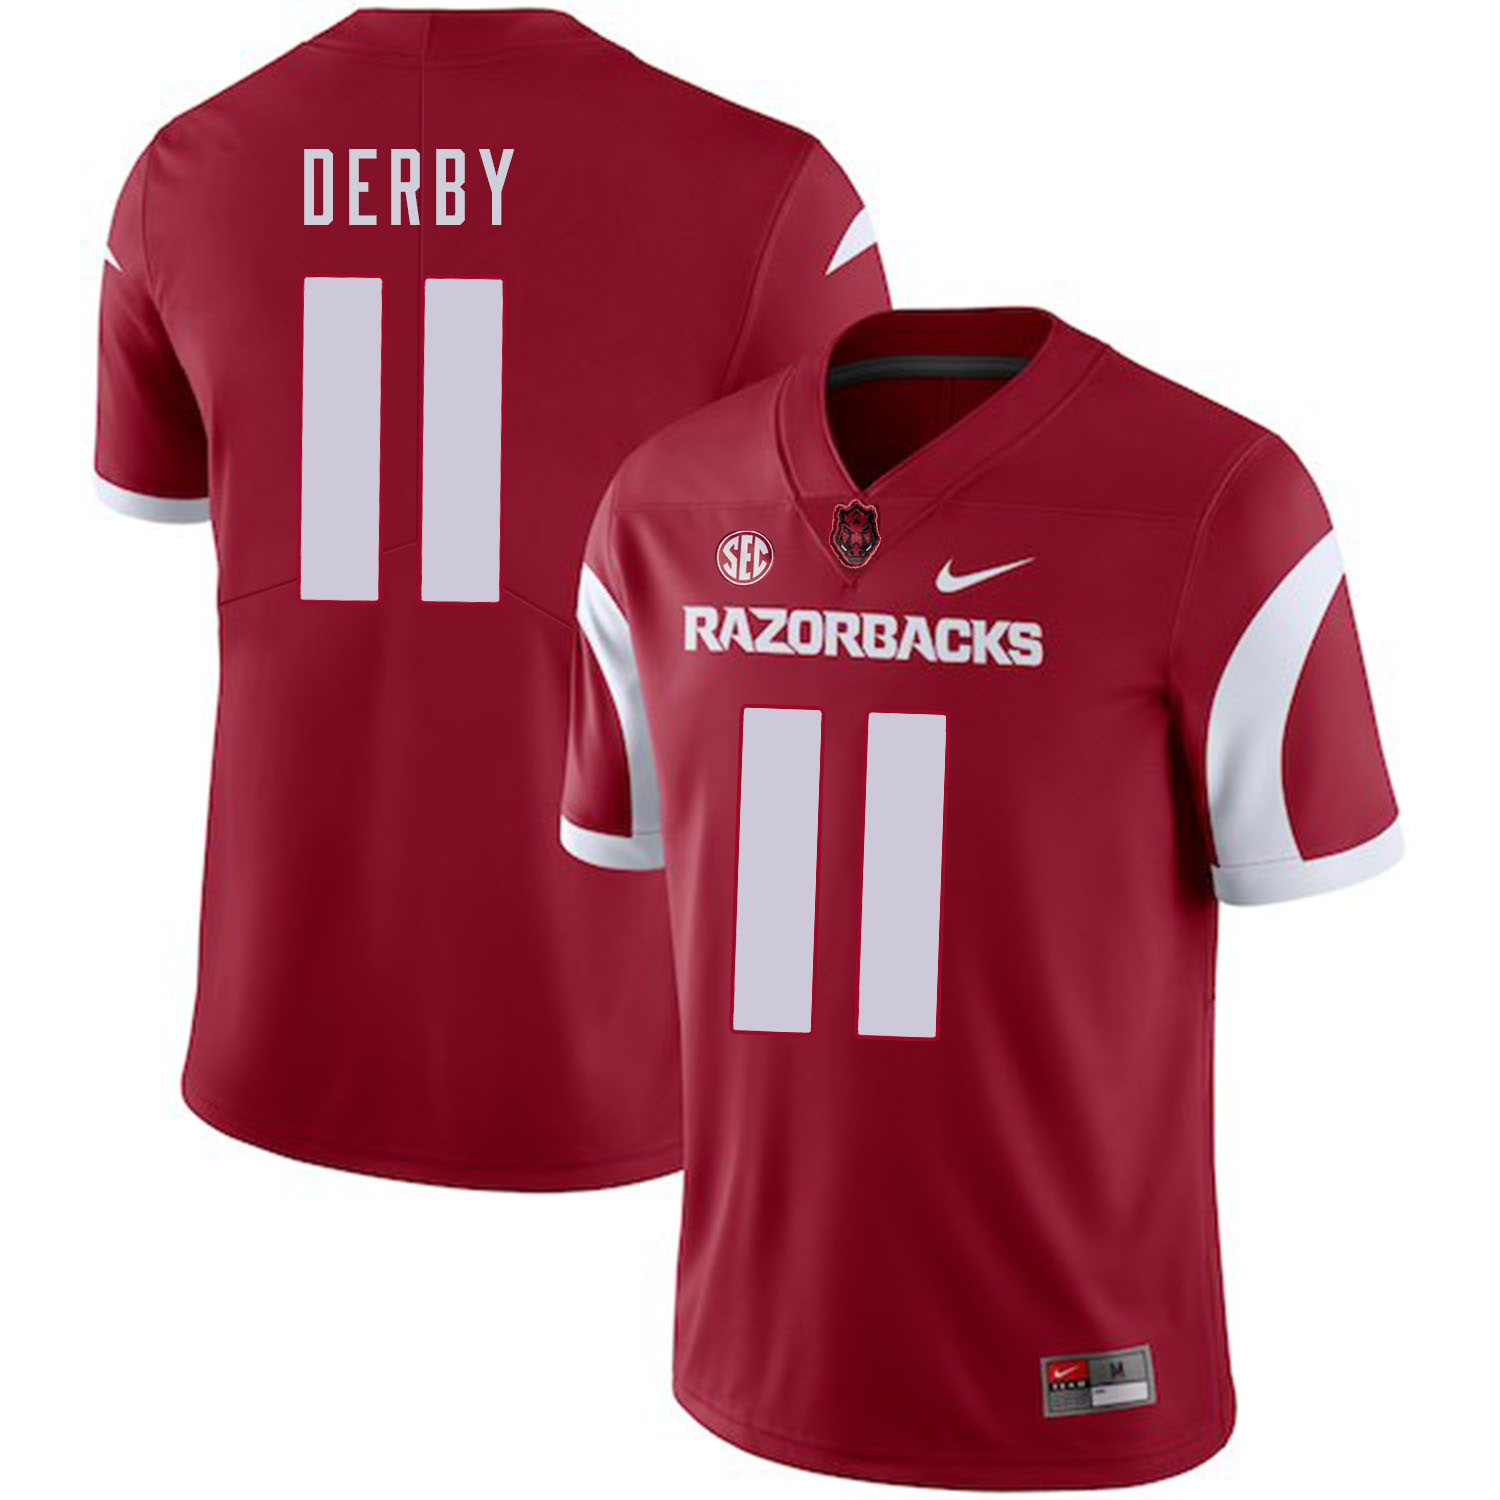 Arkansas Razorbacks 11 A.J. Derby Red College Football Jersey